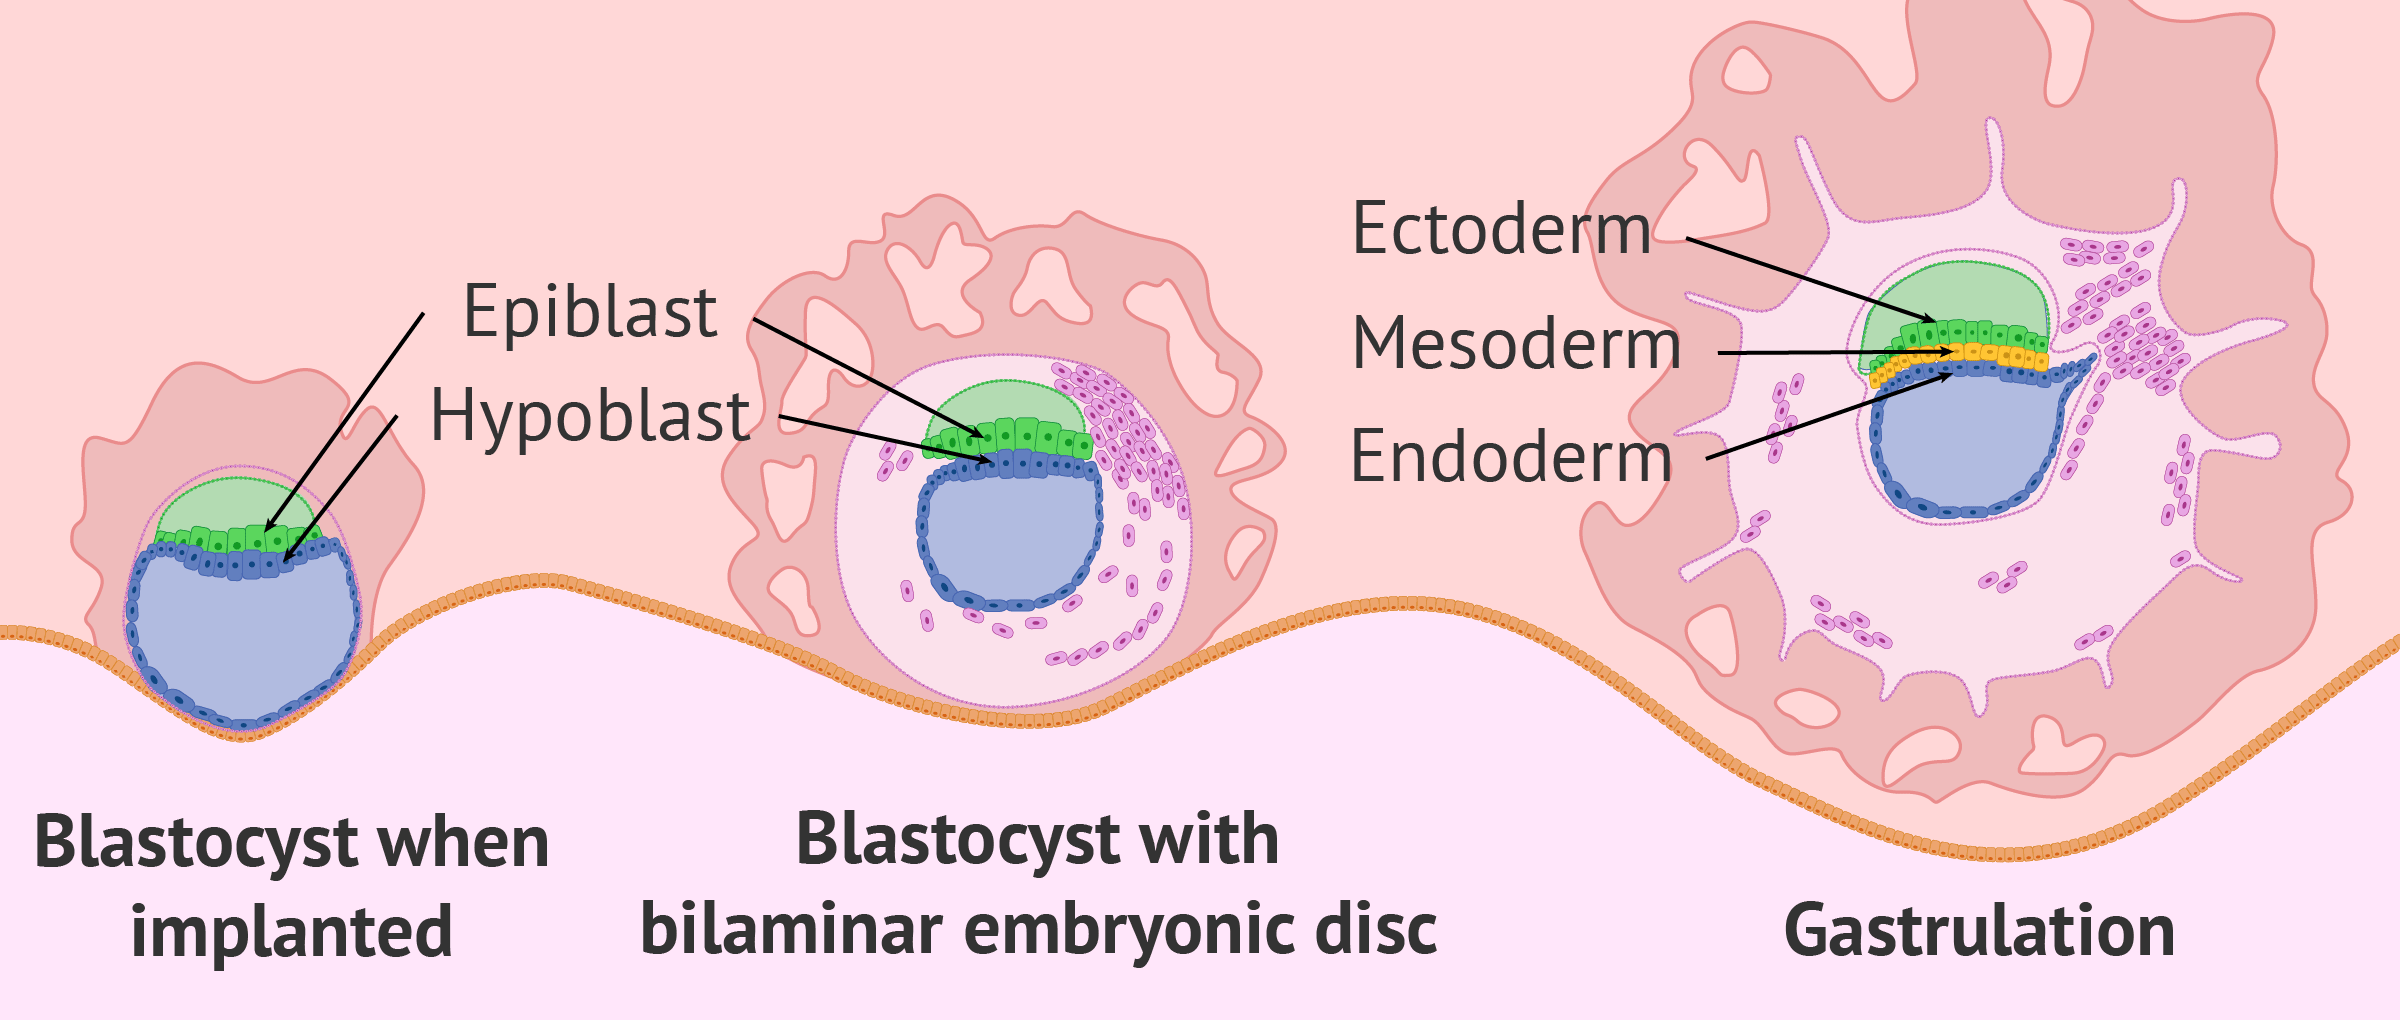 What Is the Purpose of Gastrulation in Embryonic Development?